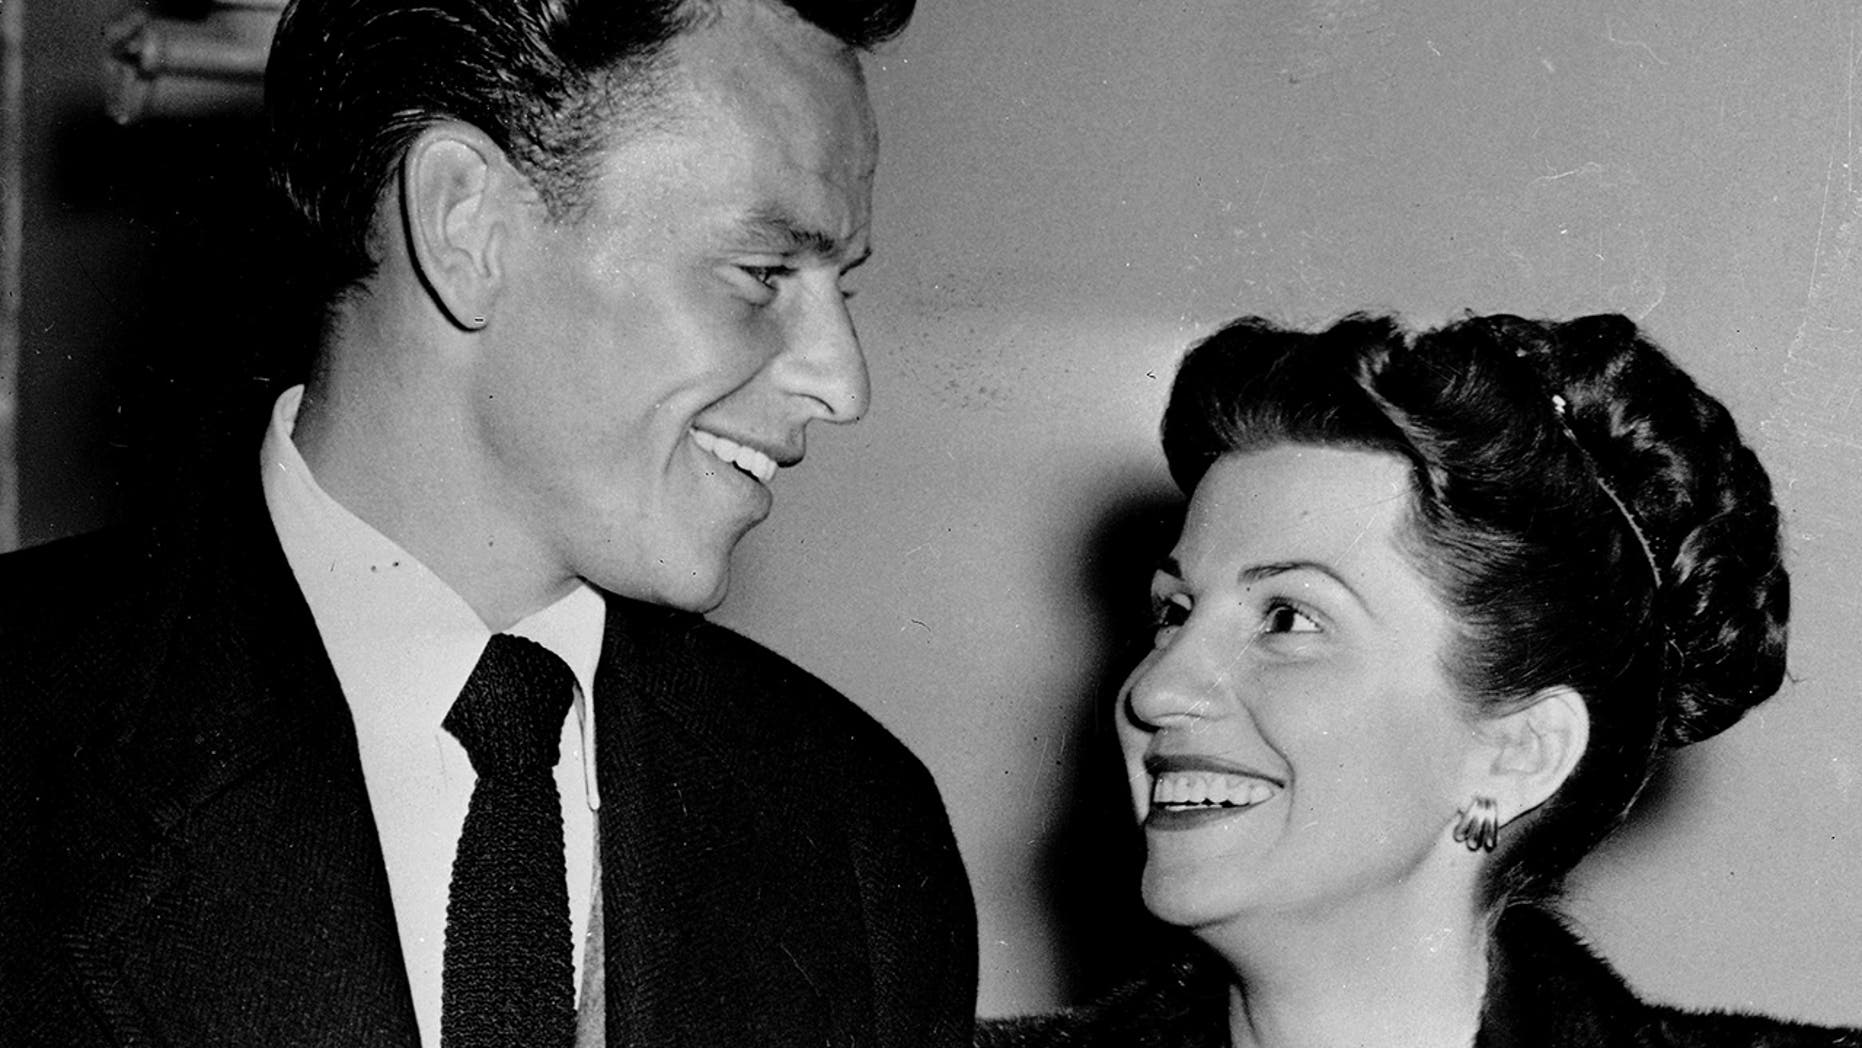 In this Oct. 23, 1946 file photo, singer Frank Sinatra and his wife Nancy smile broadly as they leave a Hollywood night club following a surprise meeting.